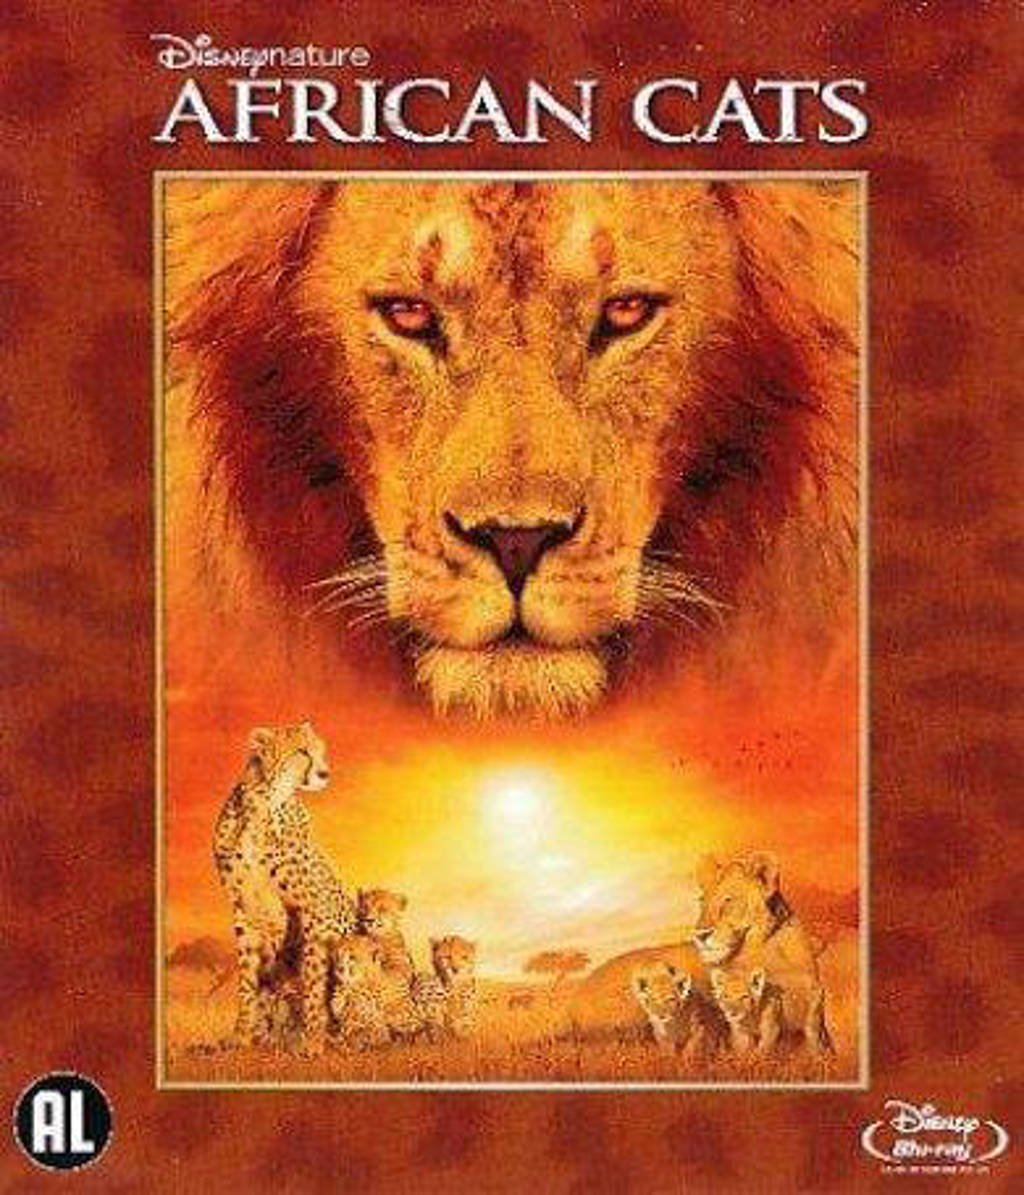 African cats (Blu-ray)